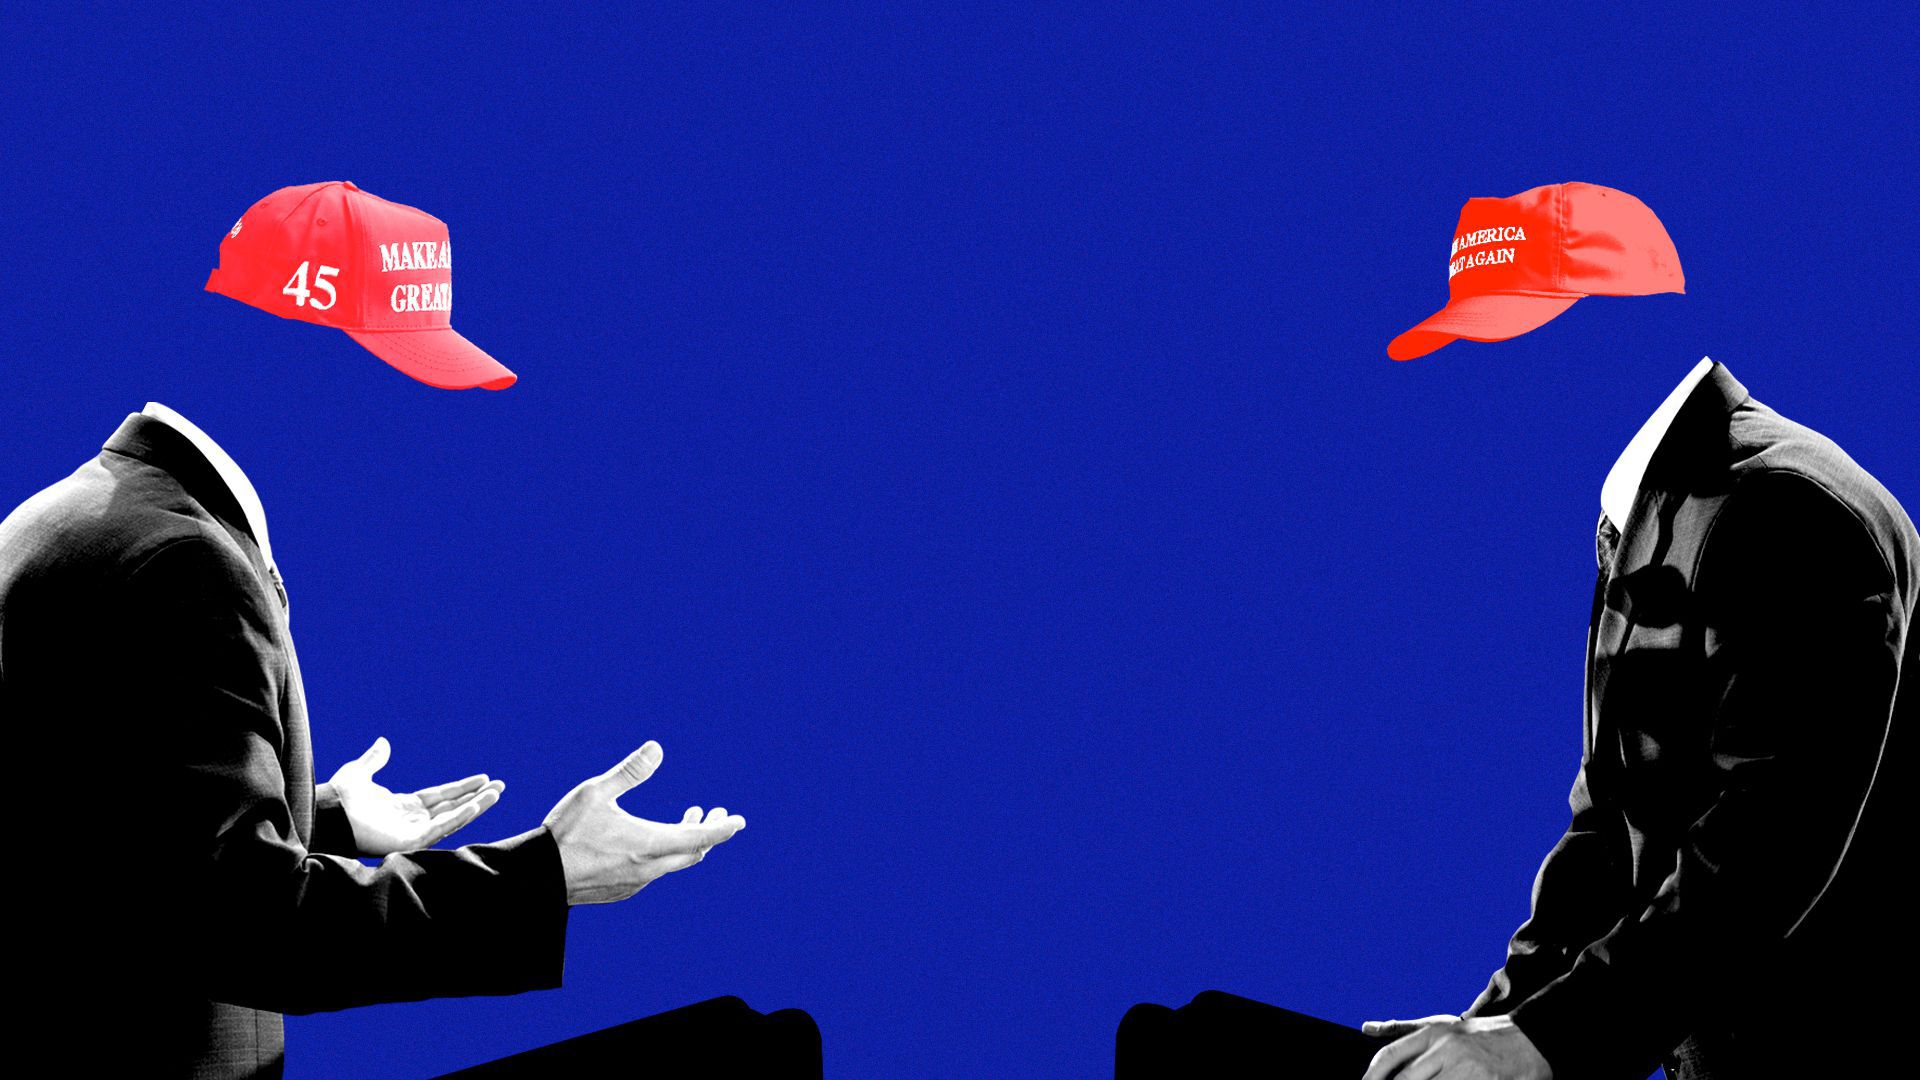 Photo illustration of two headless political candidates wearing MAGA hats and debating.